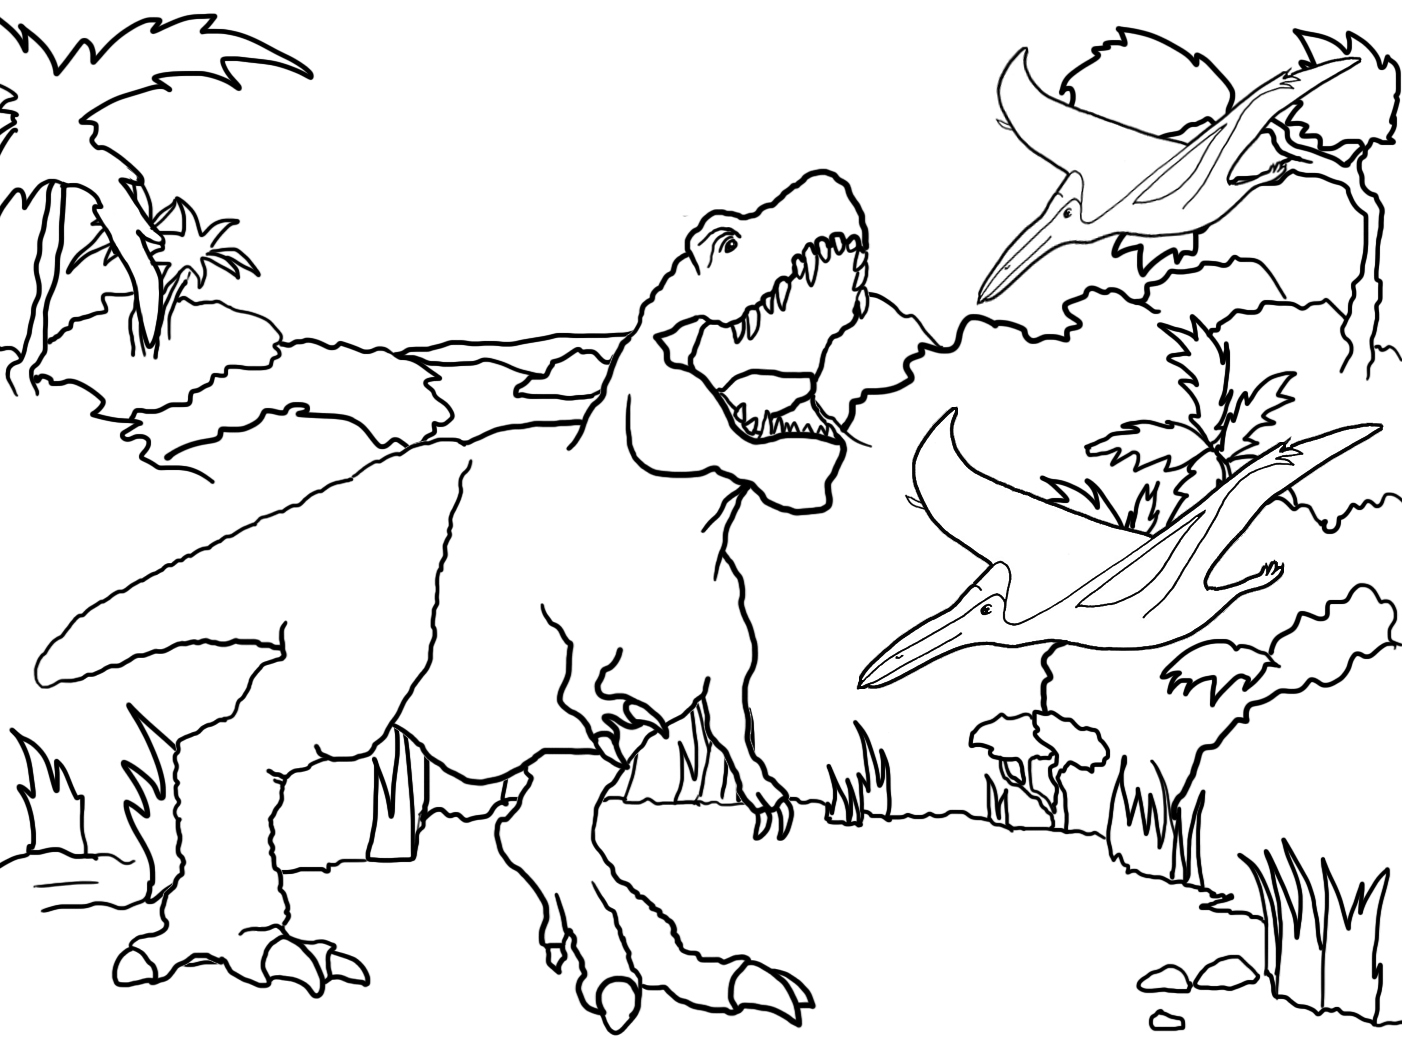 landscape with Tyrannosaurus rex and flying dinos